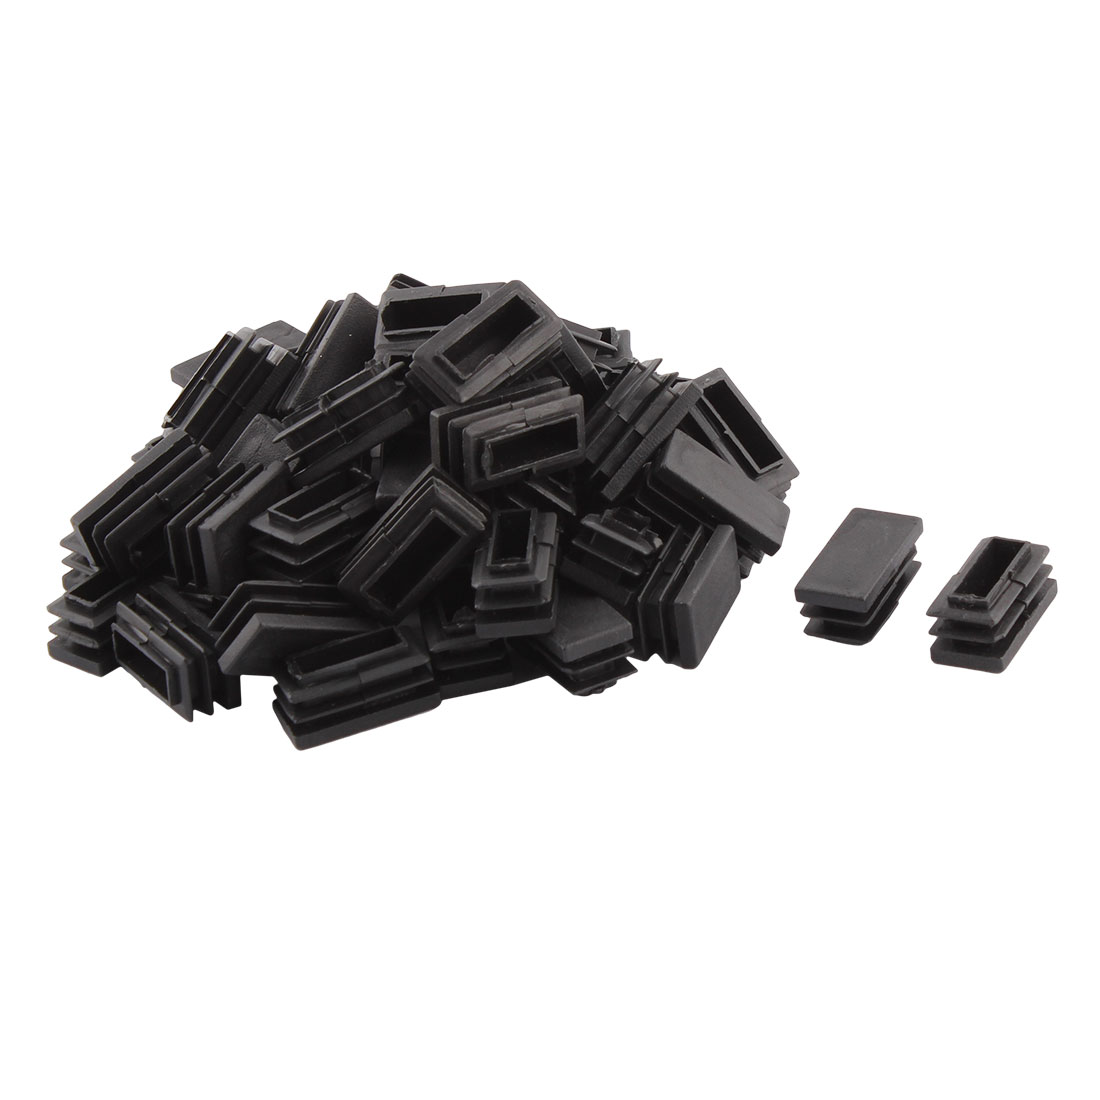 Household Plastic Rectangular Shaped Chair Leg Tube Pipe Insert Black 30 x 15mm 50 PCS